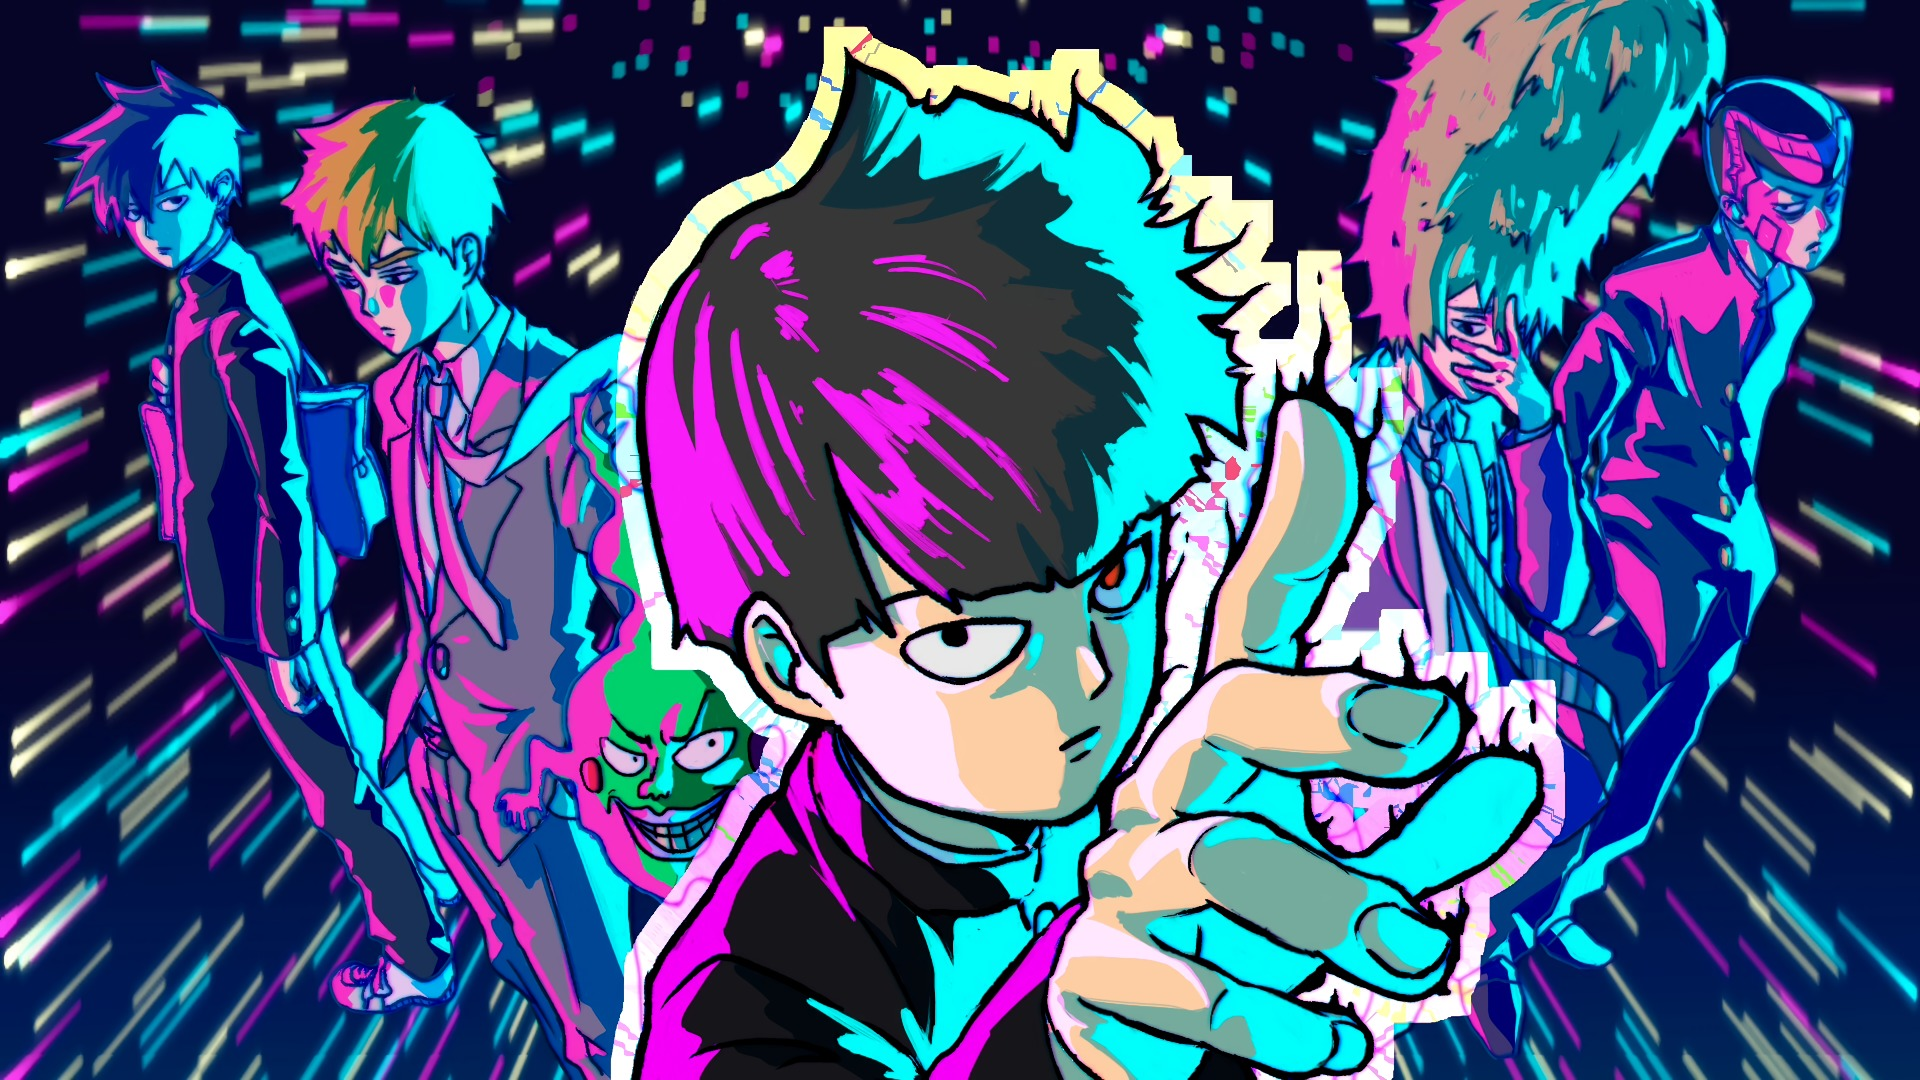 Mob Psycho 100 Season 3 Release Date, Renewal Updates, Spoilers and Manga Chapters Source